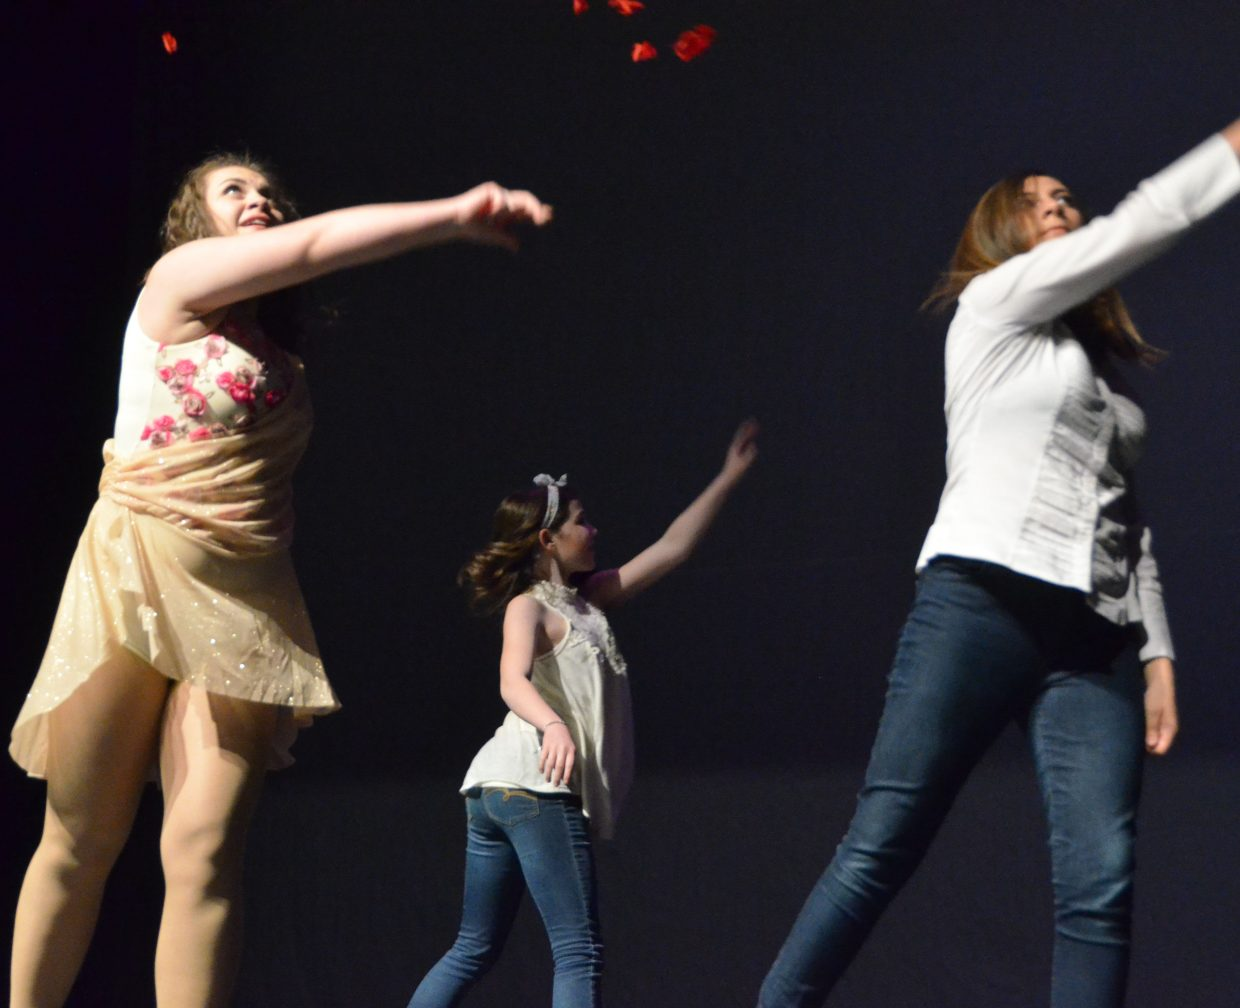 KennaLee Rowley and company spread rose petals on the stage during Saturday's Just Dance spring recital.